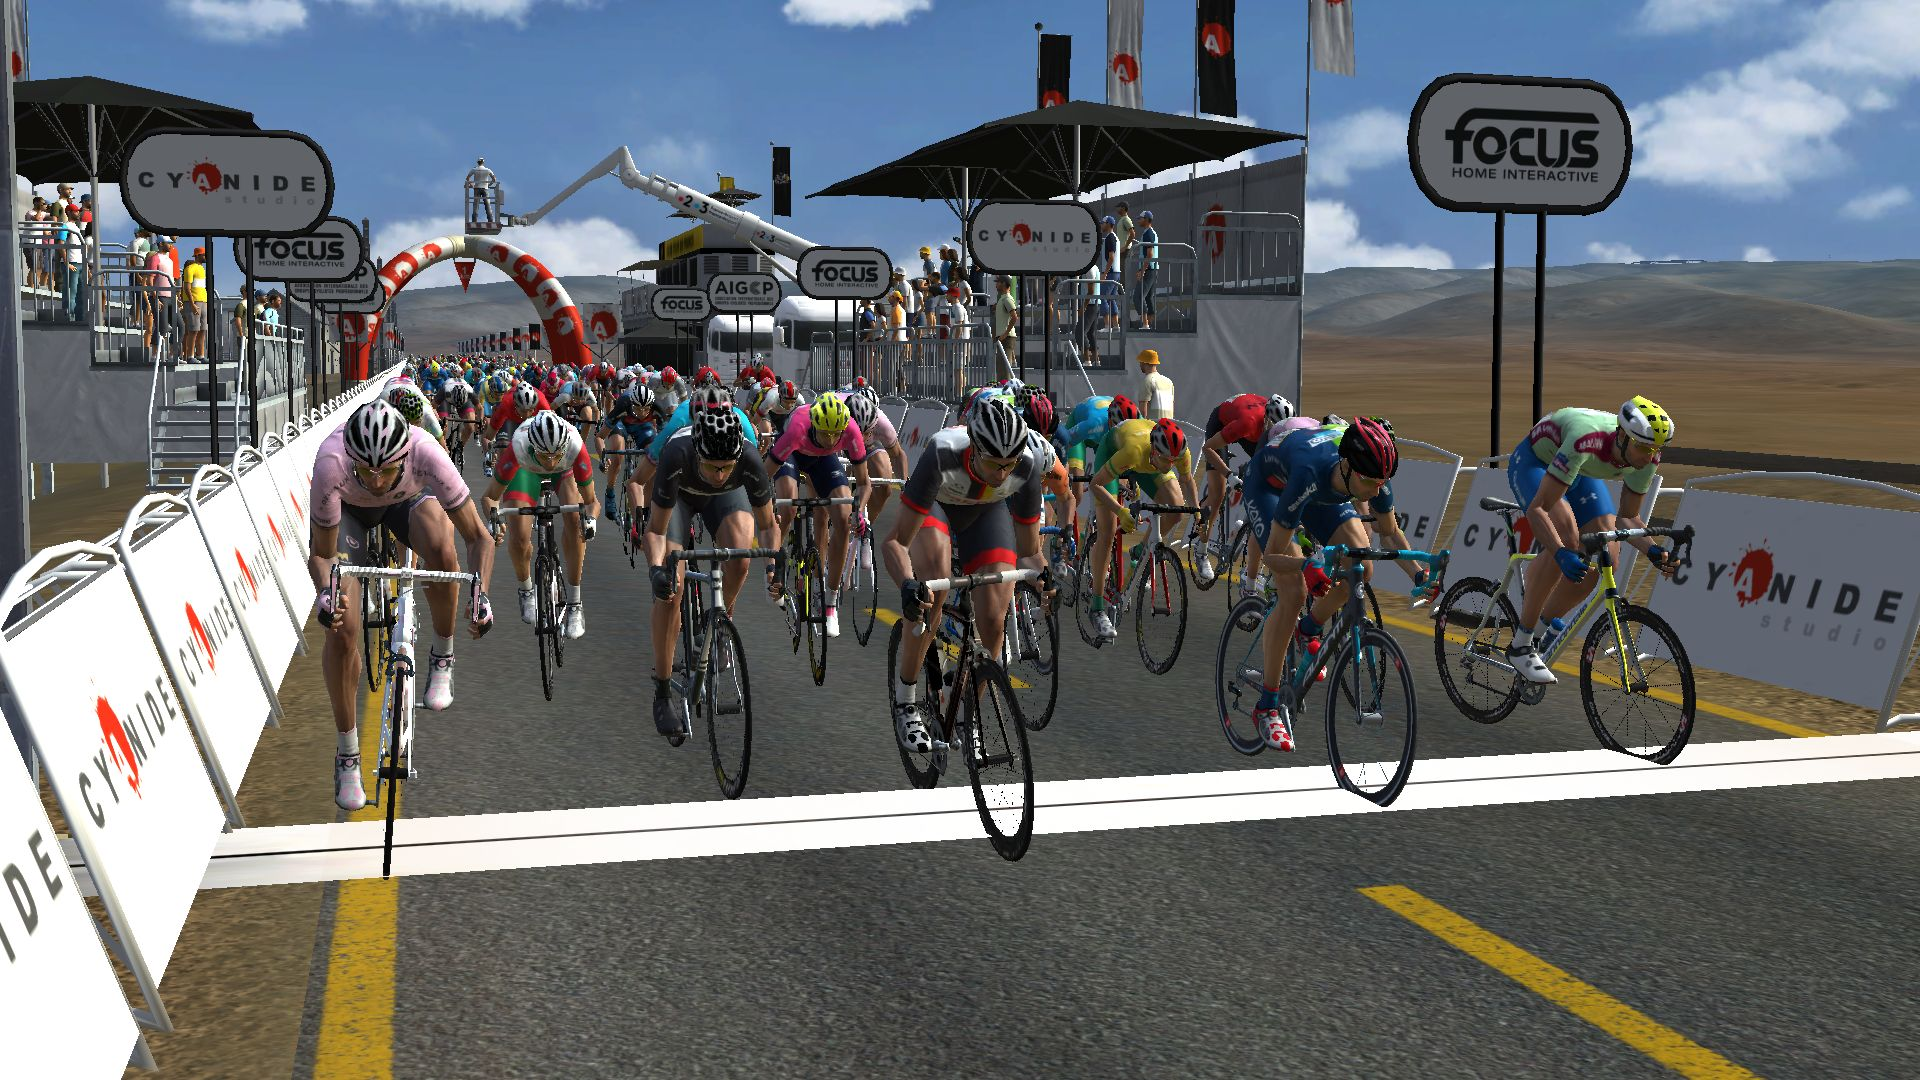 pcmdaily.com/images/mg/2019/Races/C1/TdU/mg19_tdu_05_PCM0193.jpg